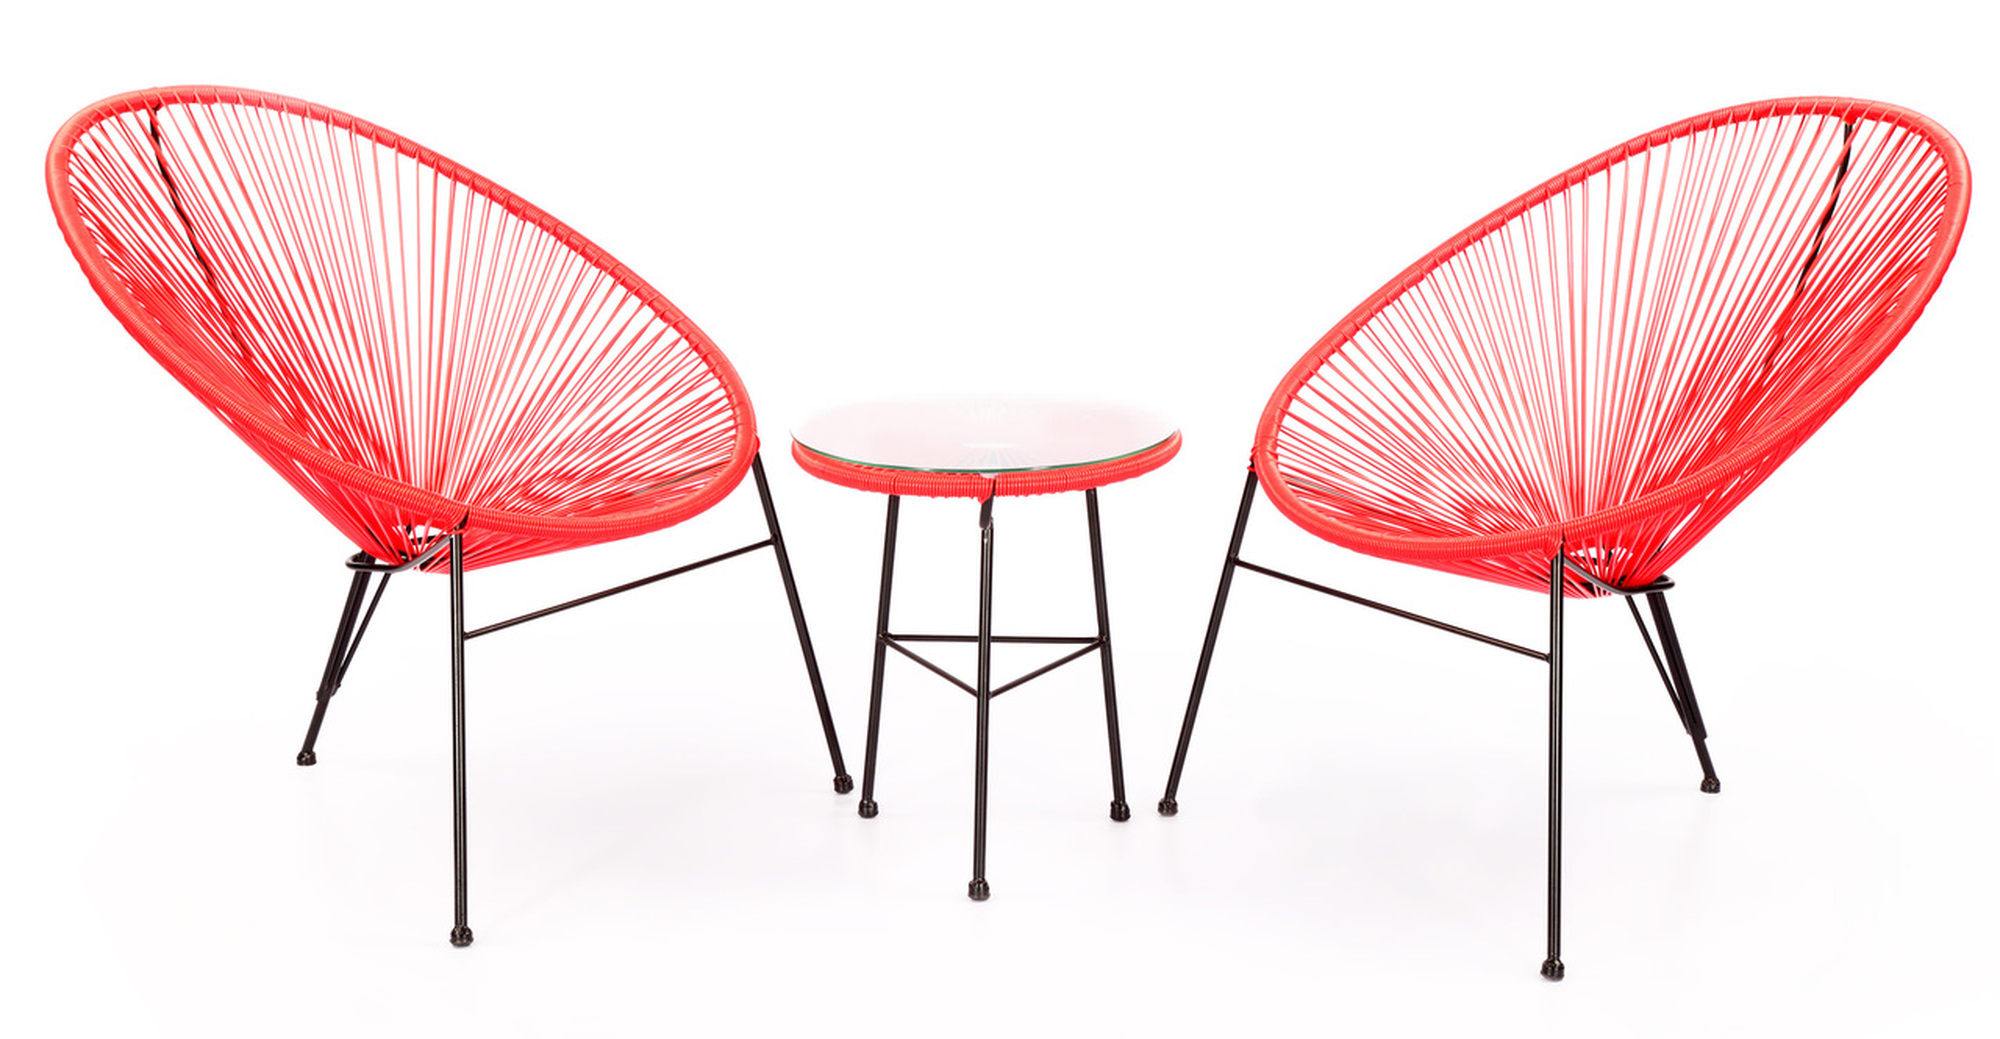 Acapulco Chairs & Table, Red